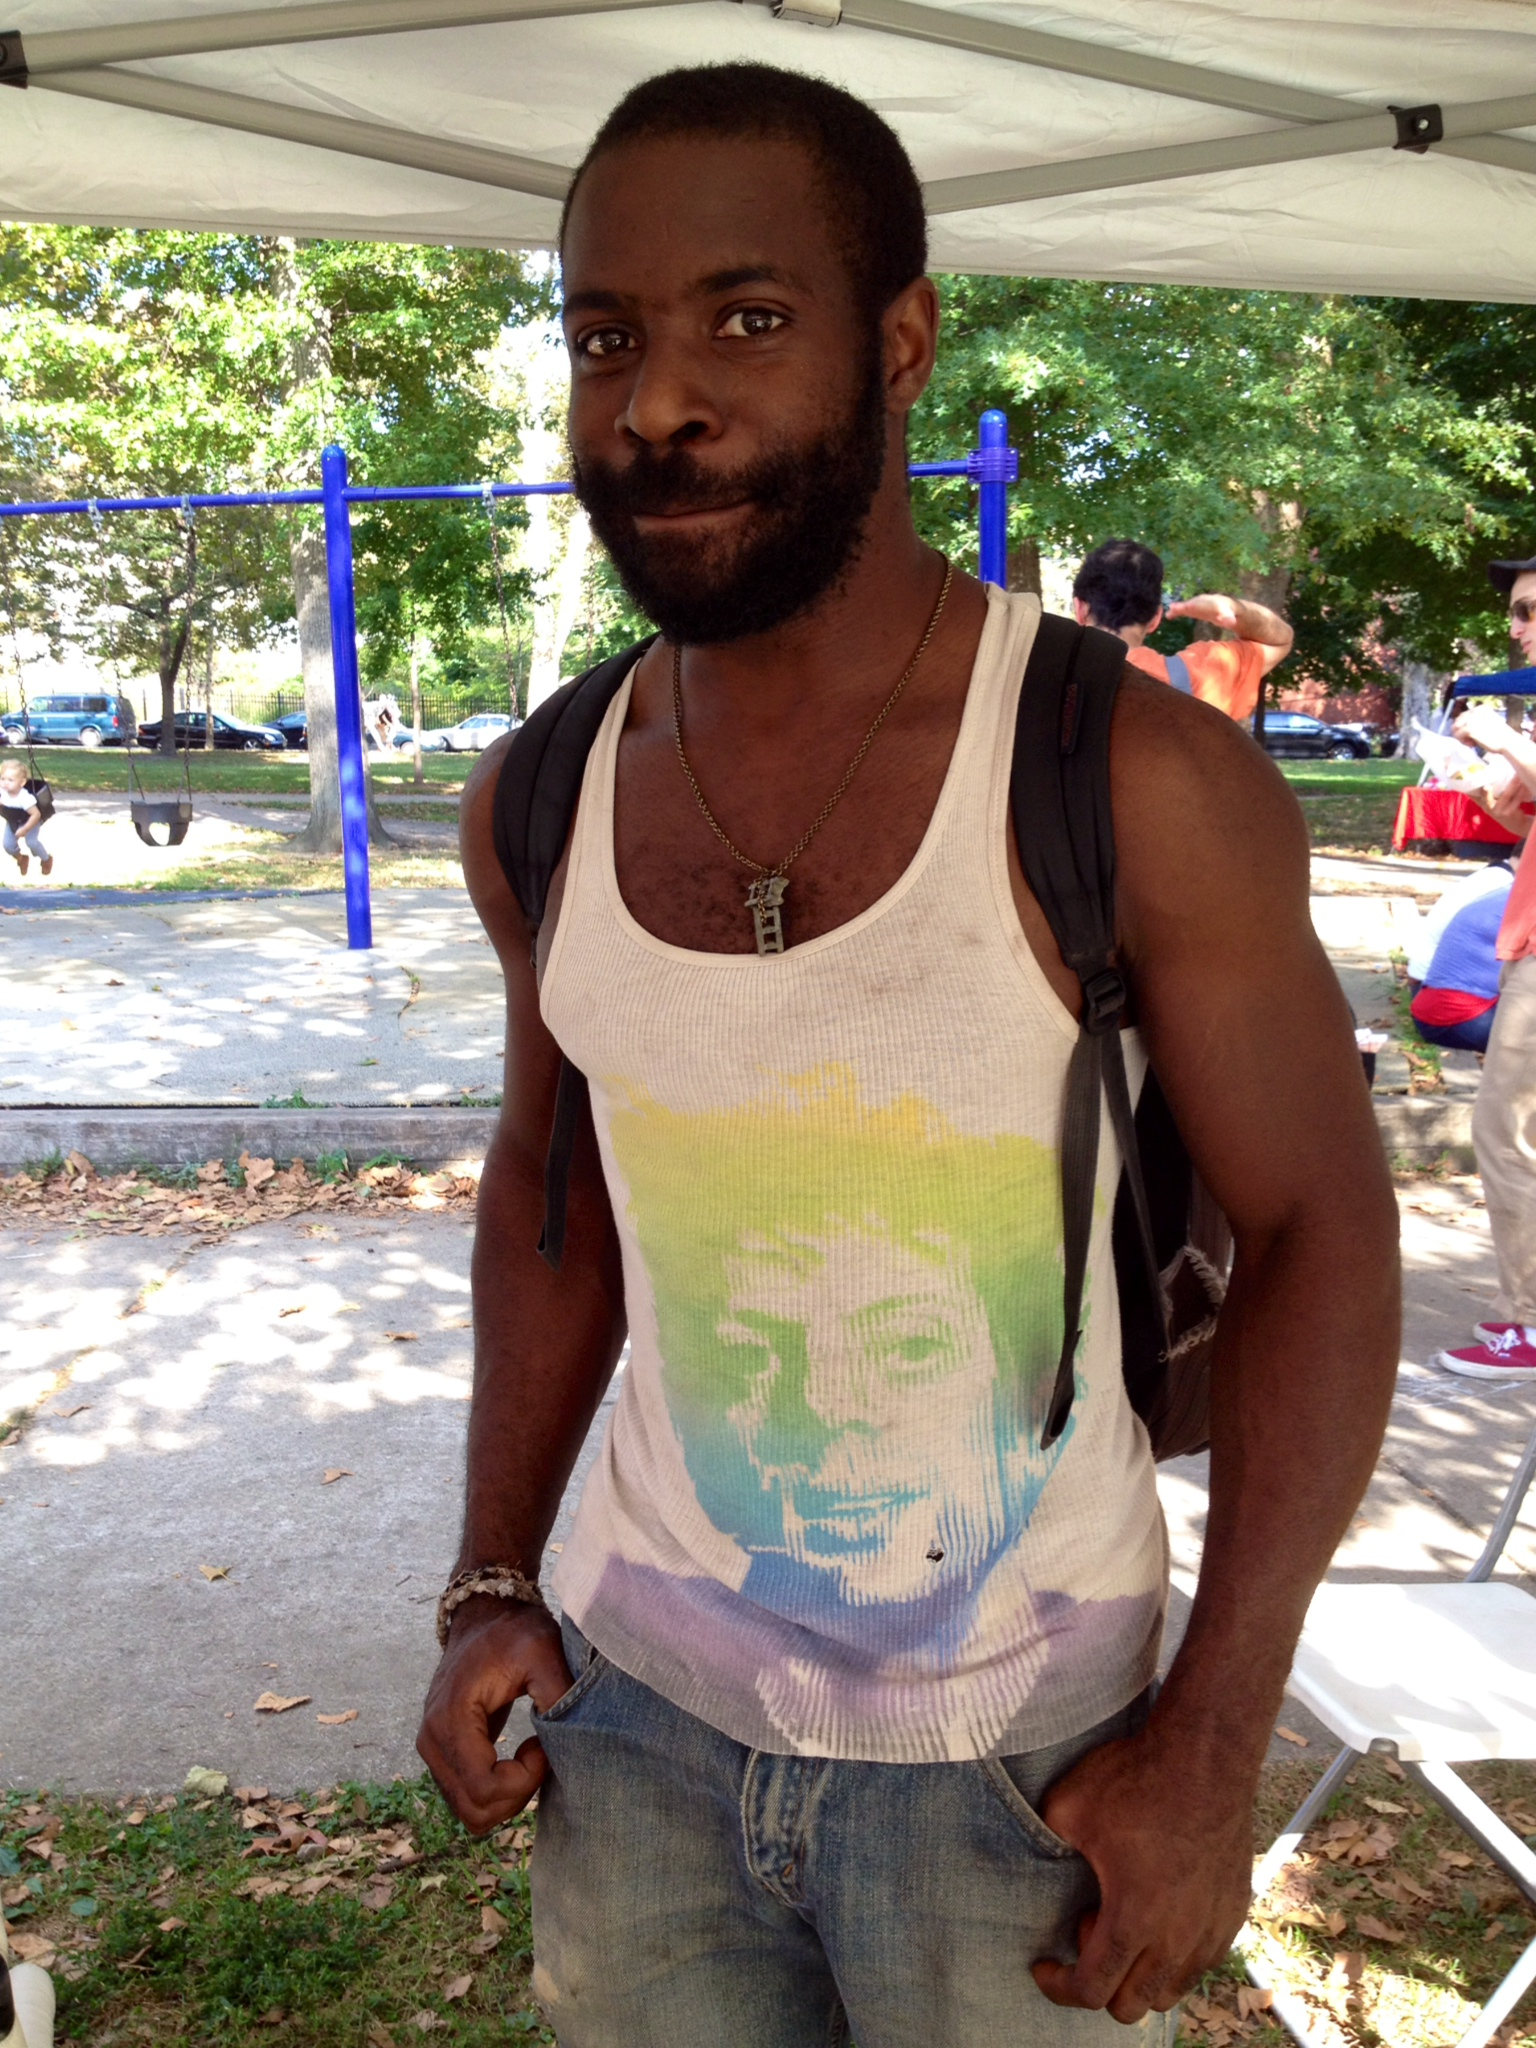 kuf, member of  west philadelphia orchestra , swung by to model our wares. here he's sporting a twin cinderblocks necklace.